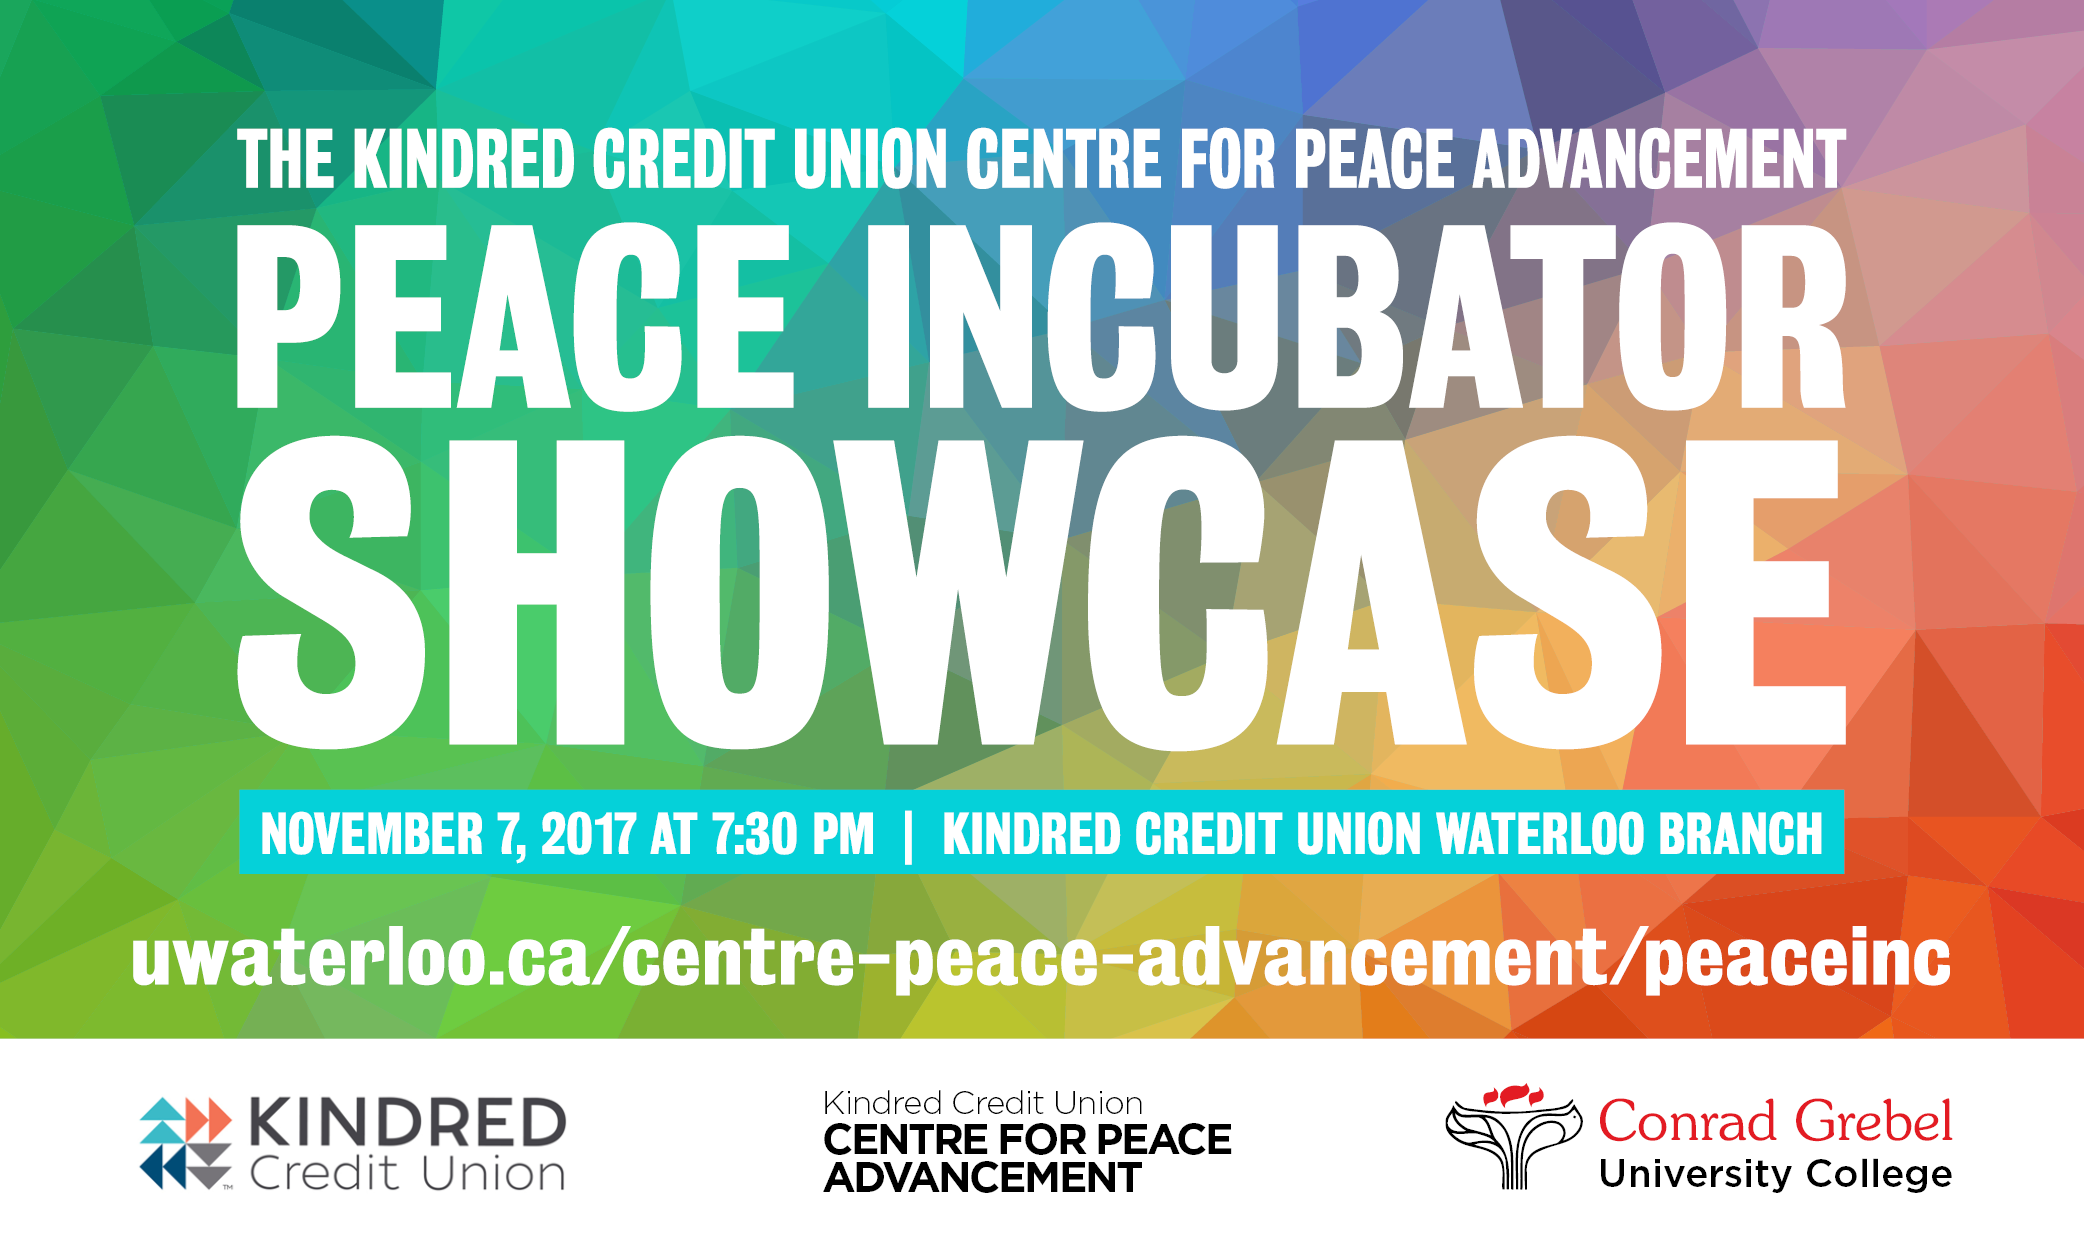 Peace Incubator Showcase